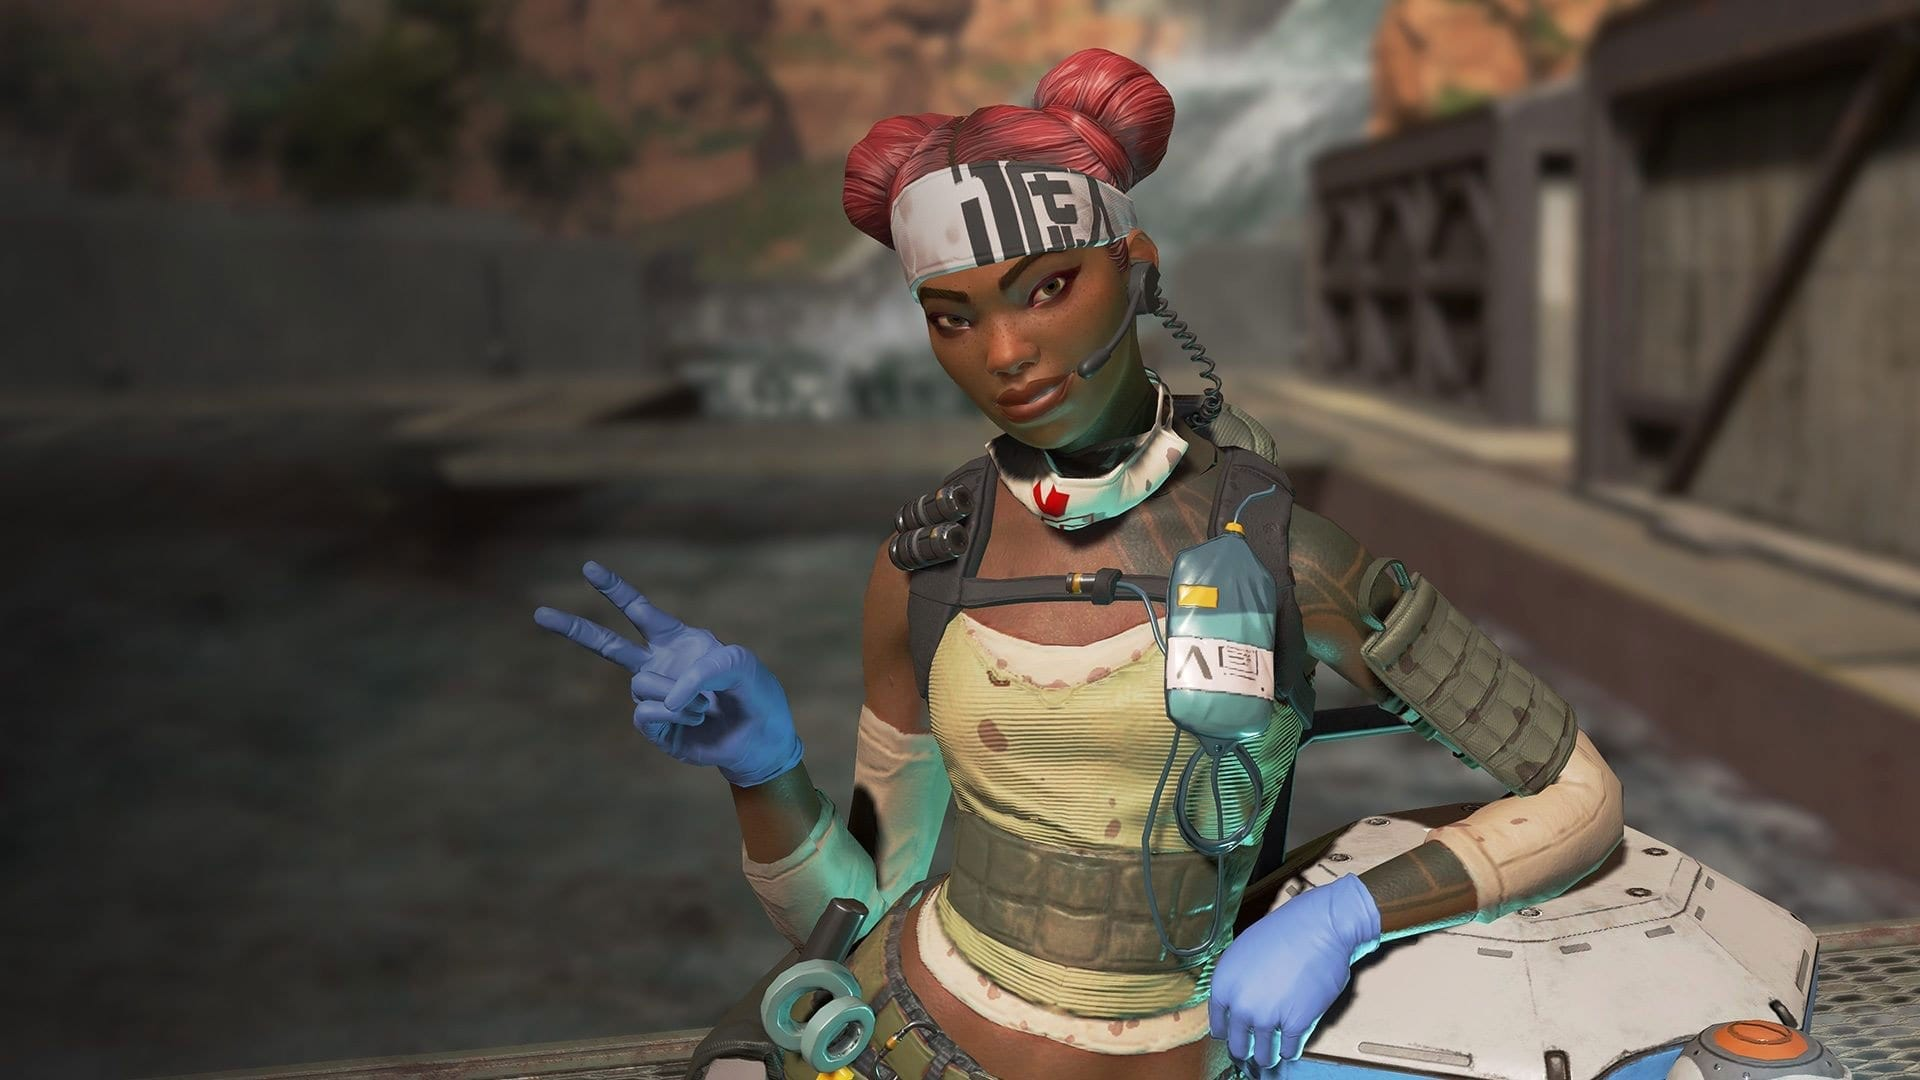 Apex Legends Cosplayer Banned For Using Blackface on Stream